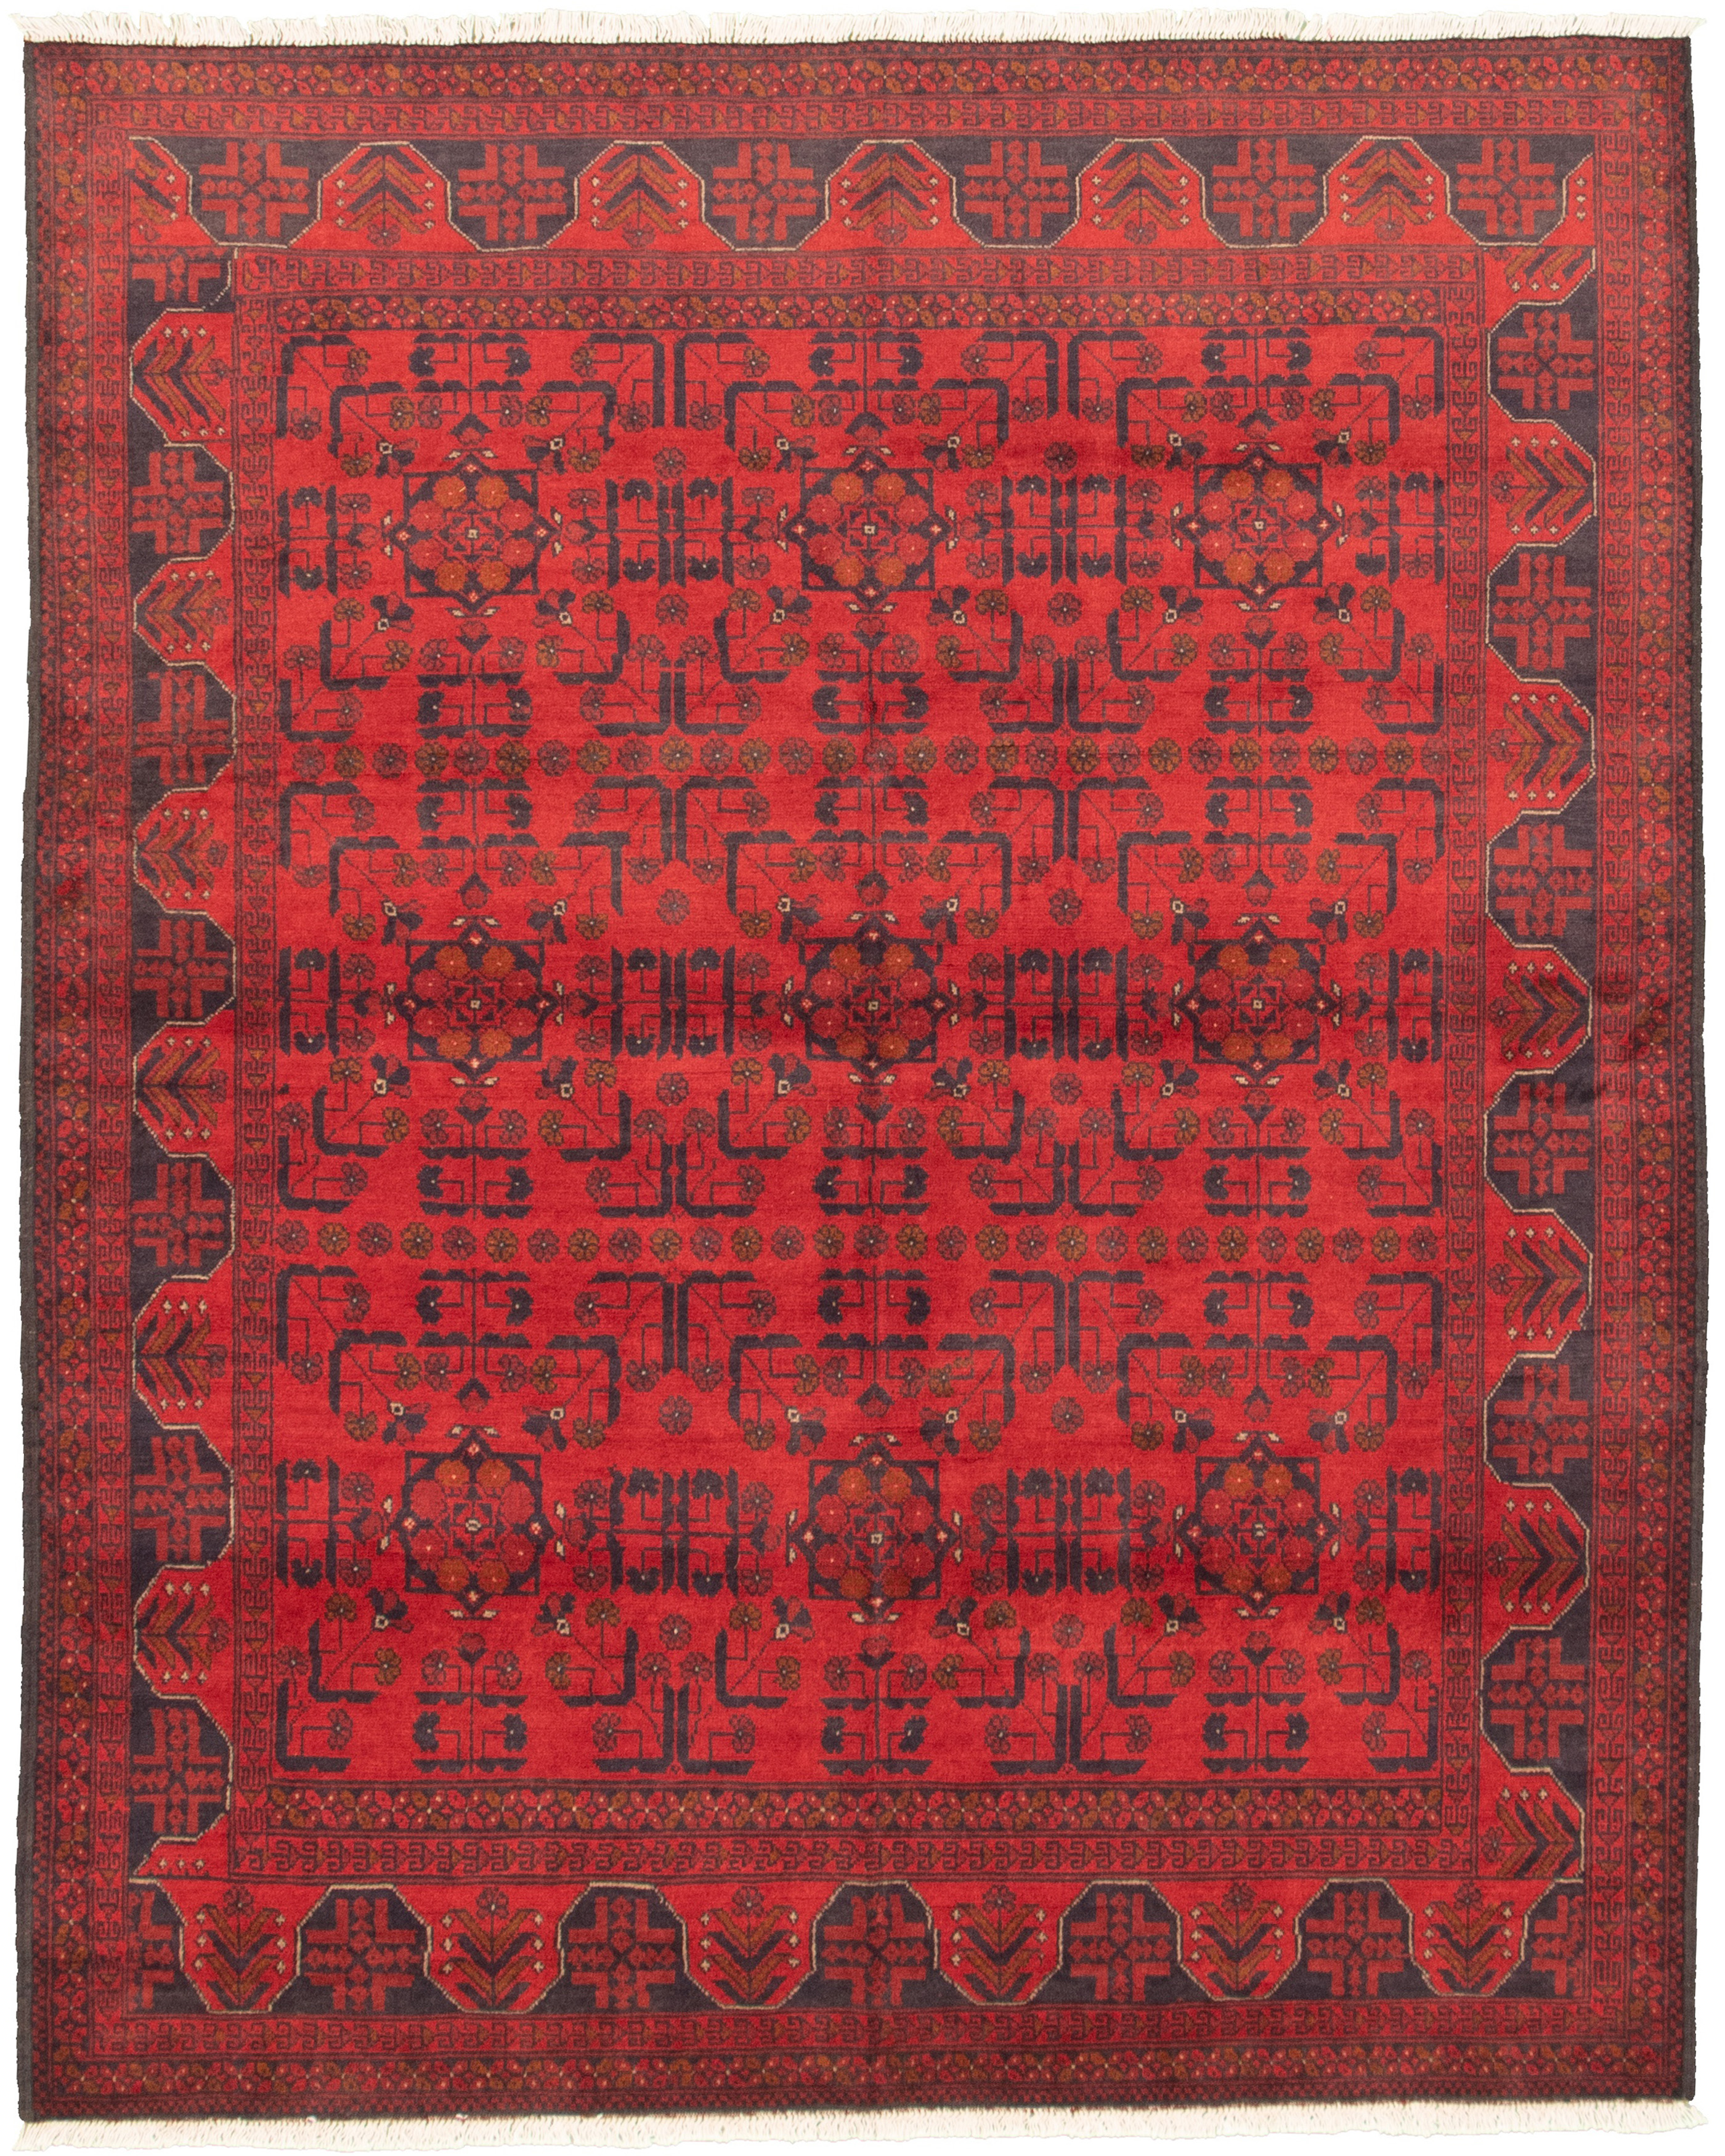 "Hand-knotted Finest Khal Mohammadi Red Wool Rug 5'10"" x 7'4""  Size: 5'10"" x 7'4"""